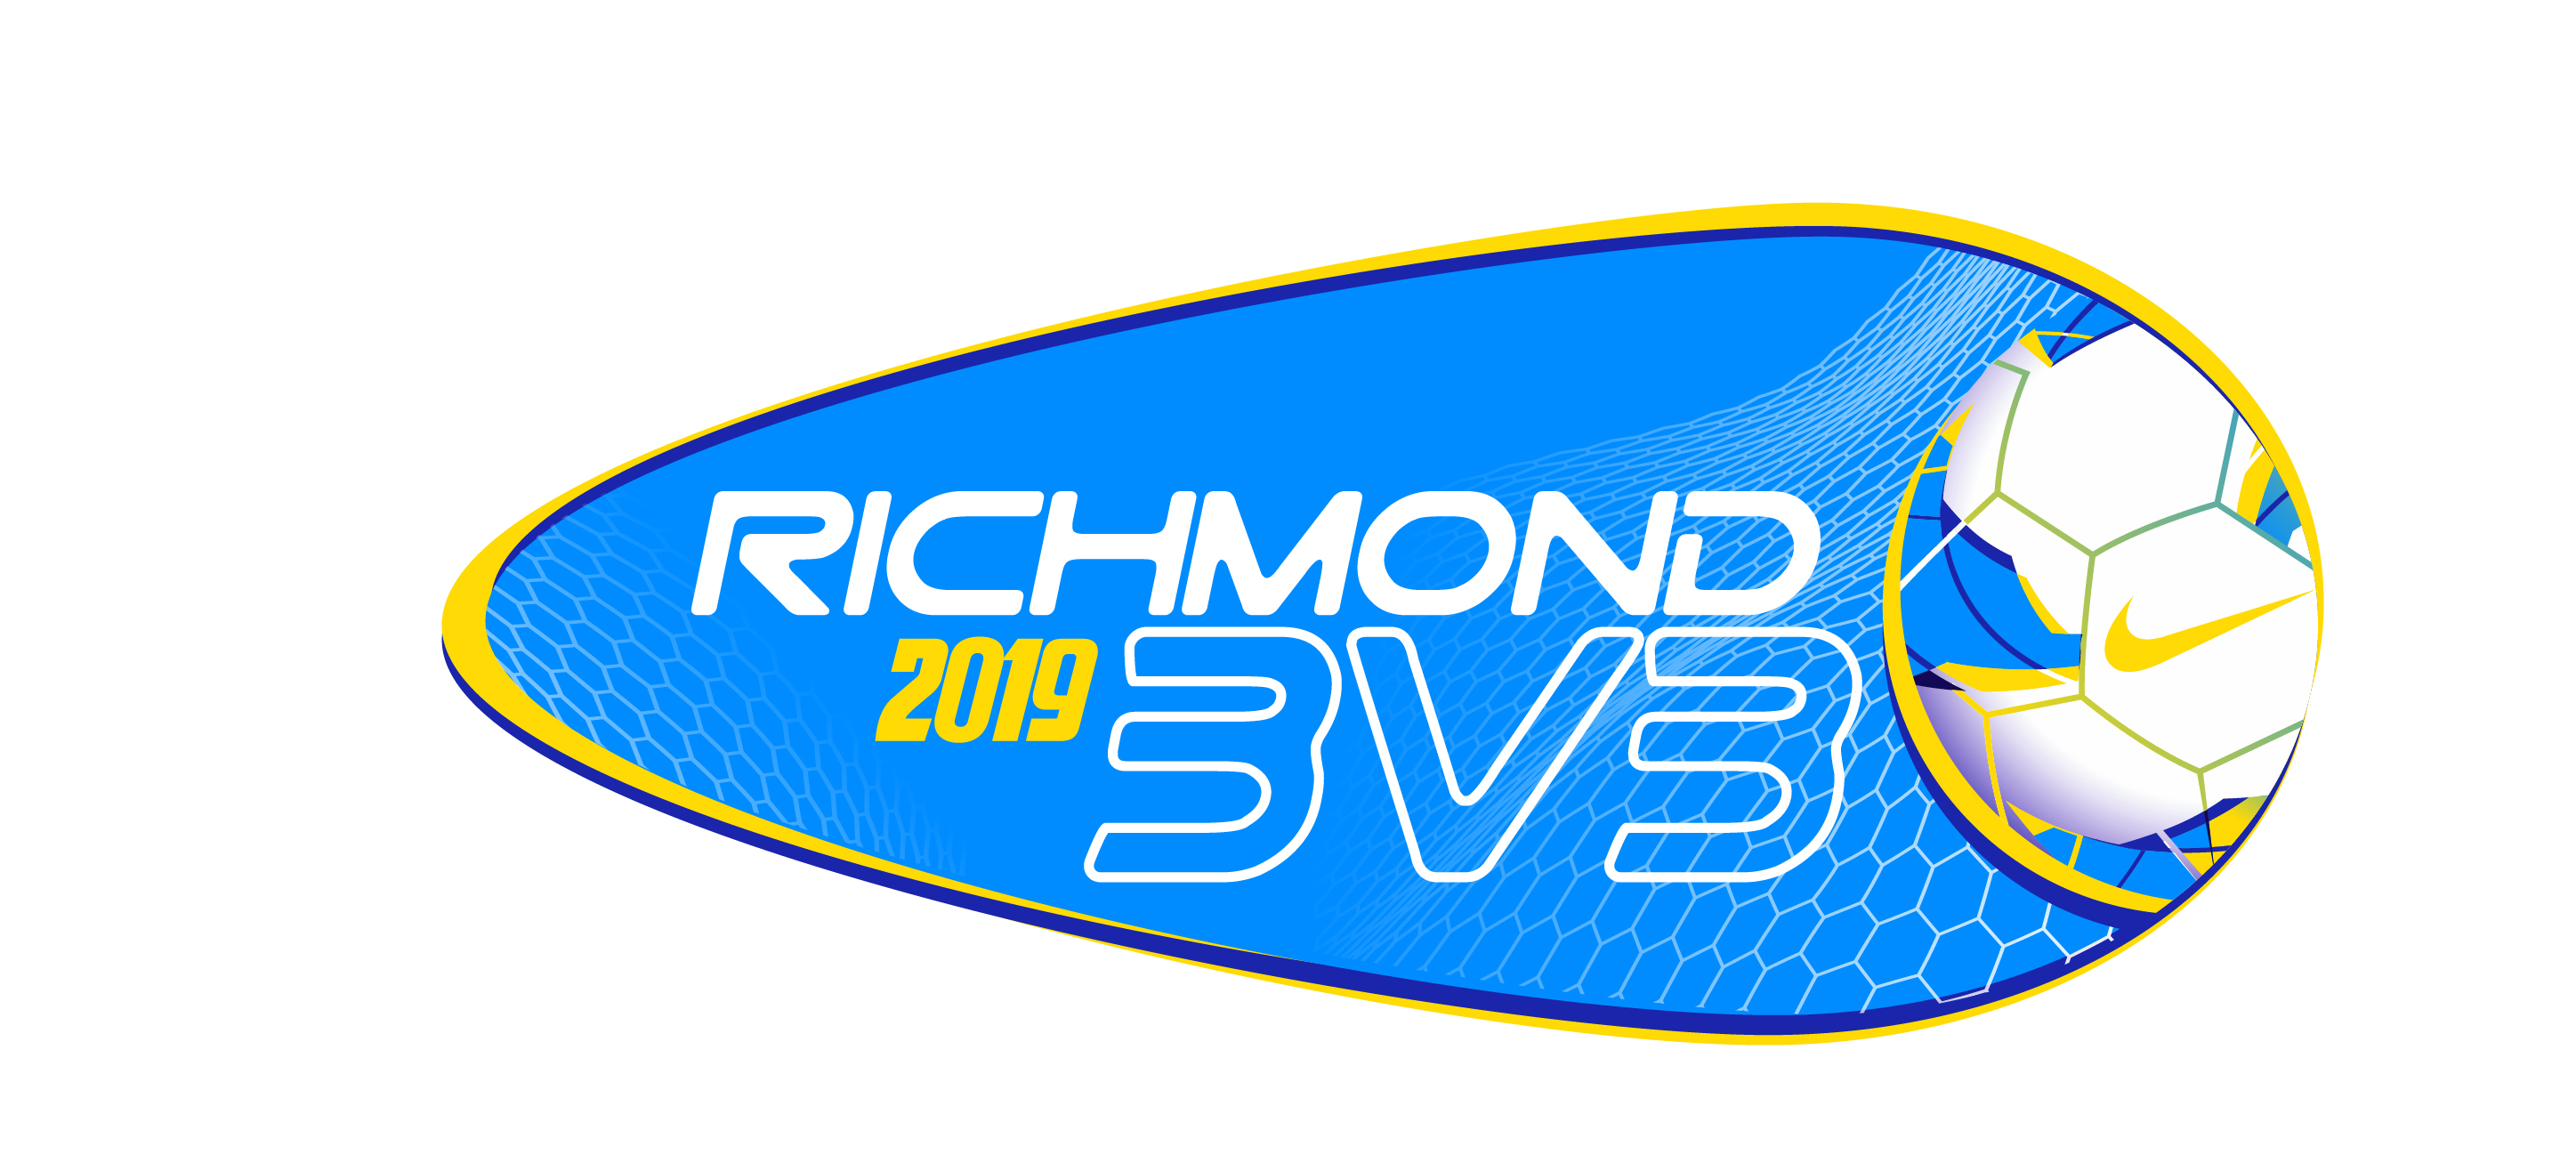 2019 Richmond 3v3 Logo Revealed!